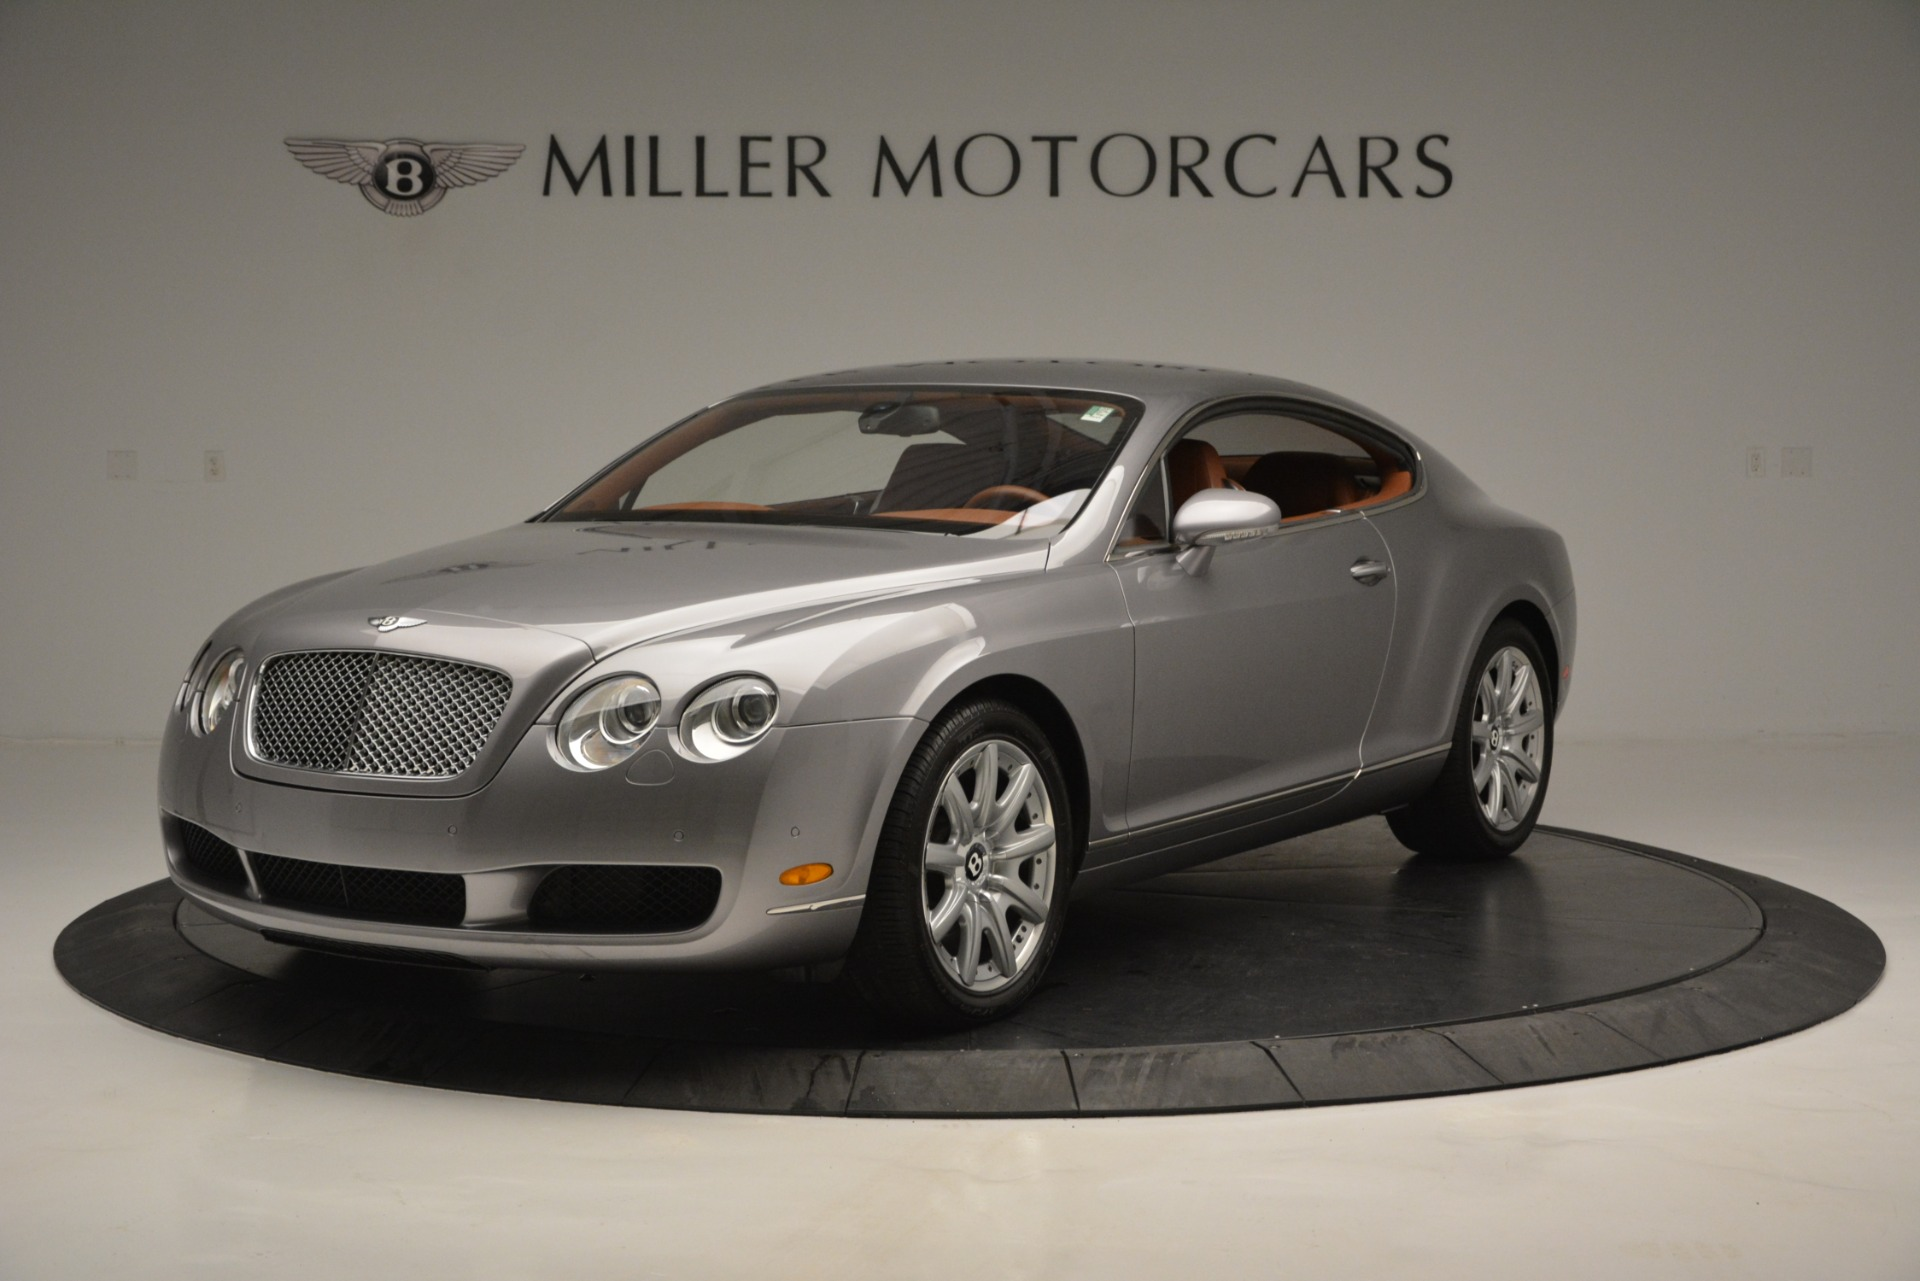 Used 2005 Bentley Continental GT GT Turbo For Sale In Westport, CT